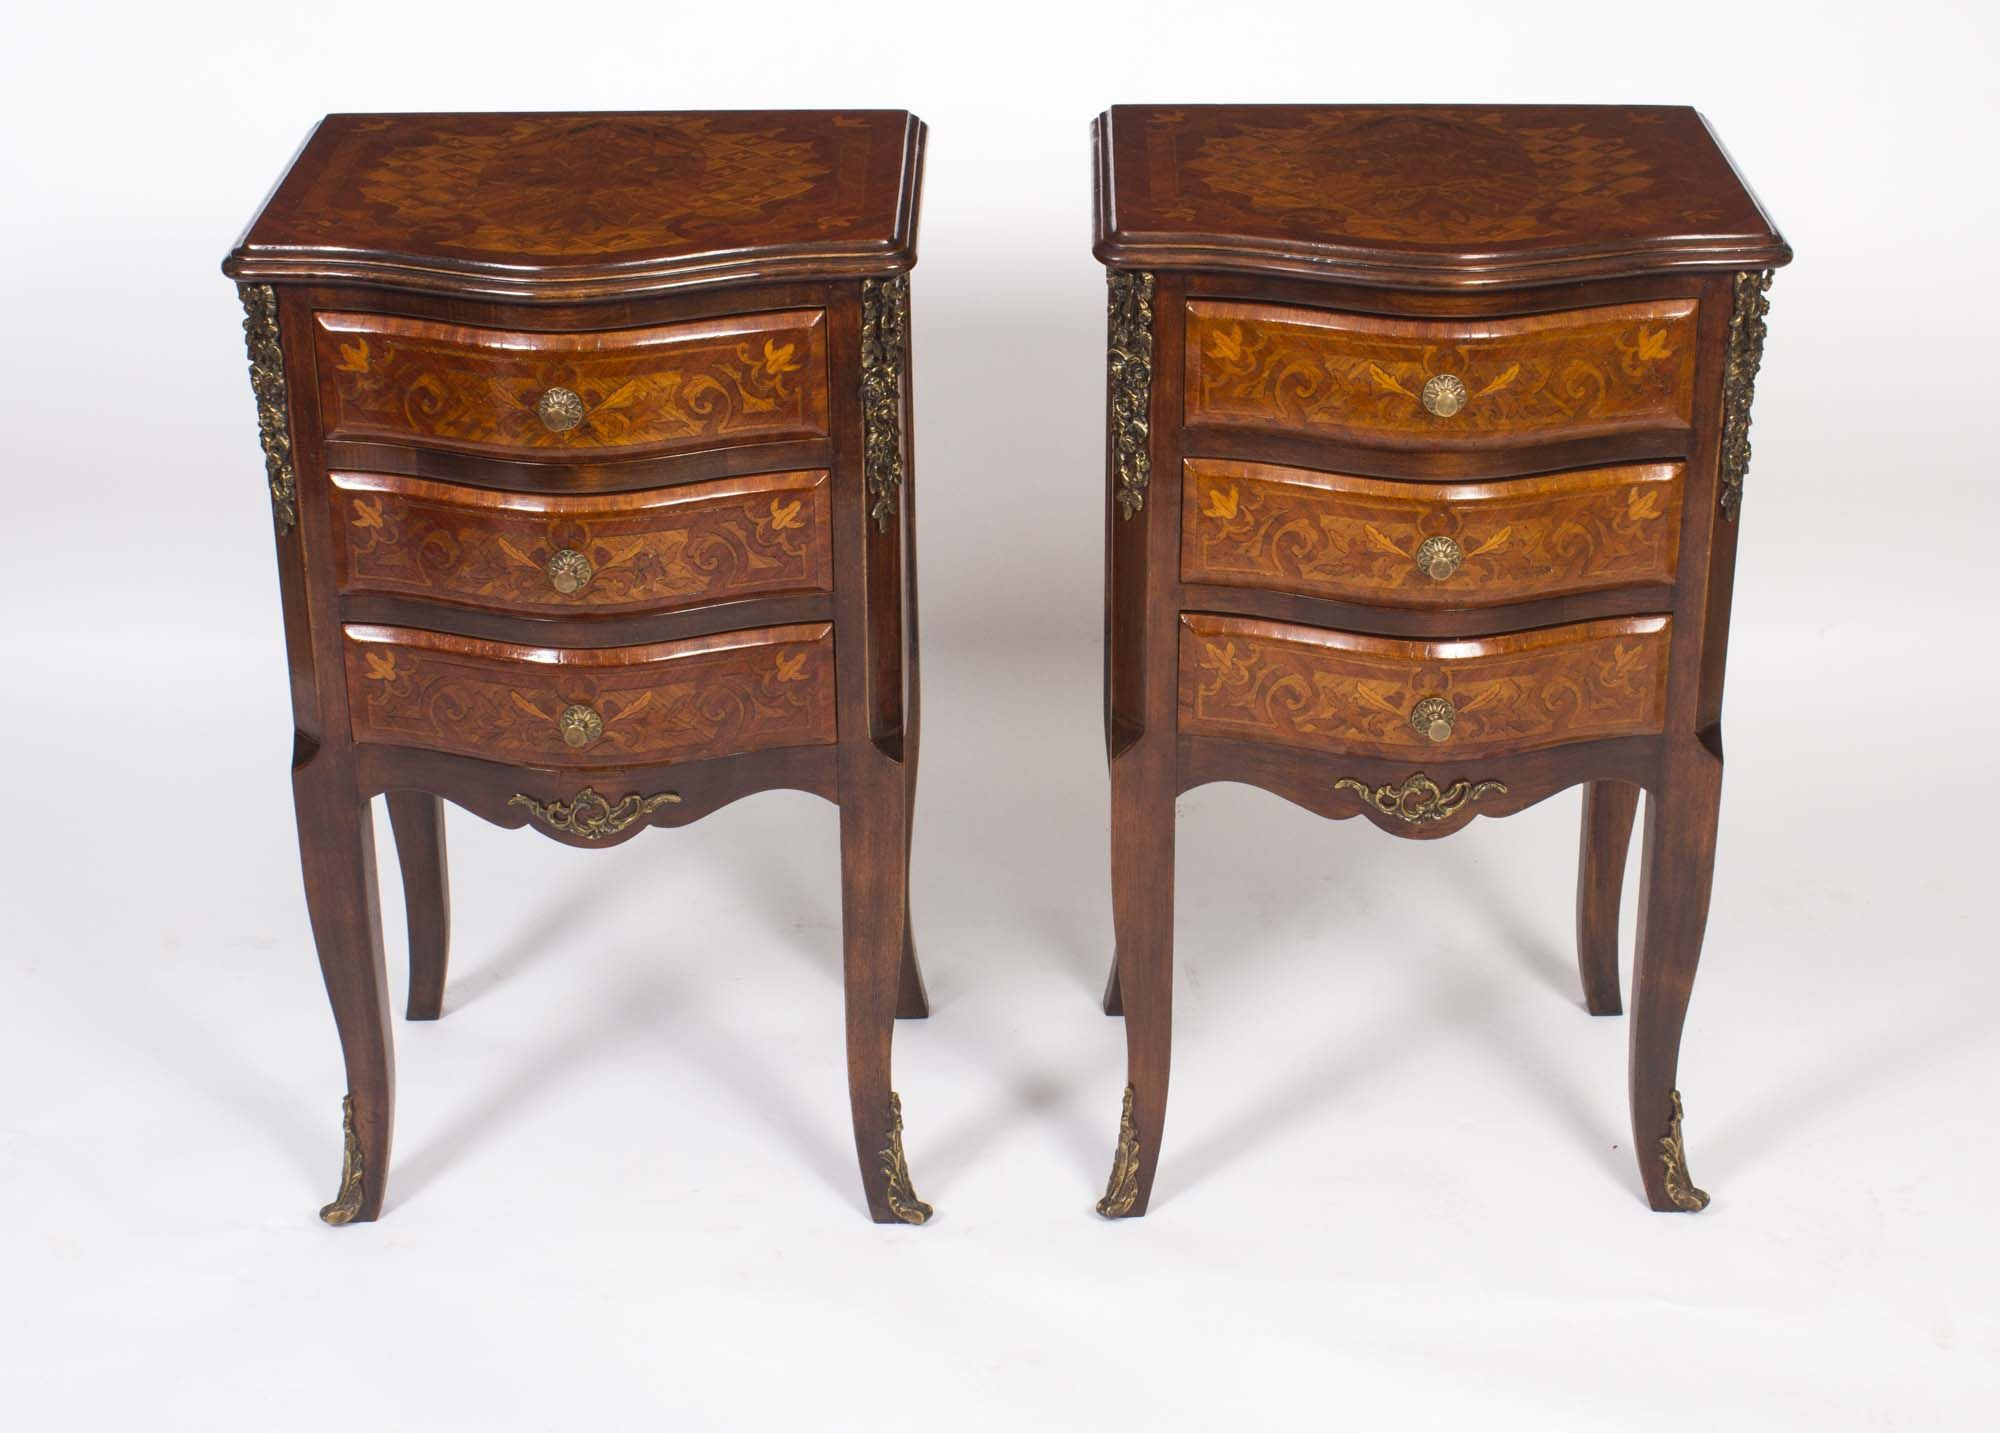 A vintage pair of French marquetry bedside cabinets.